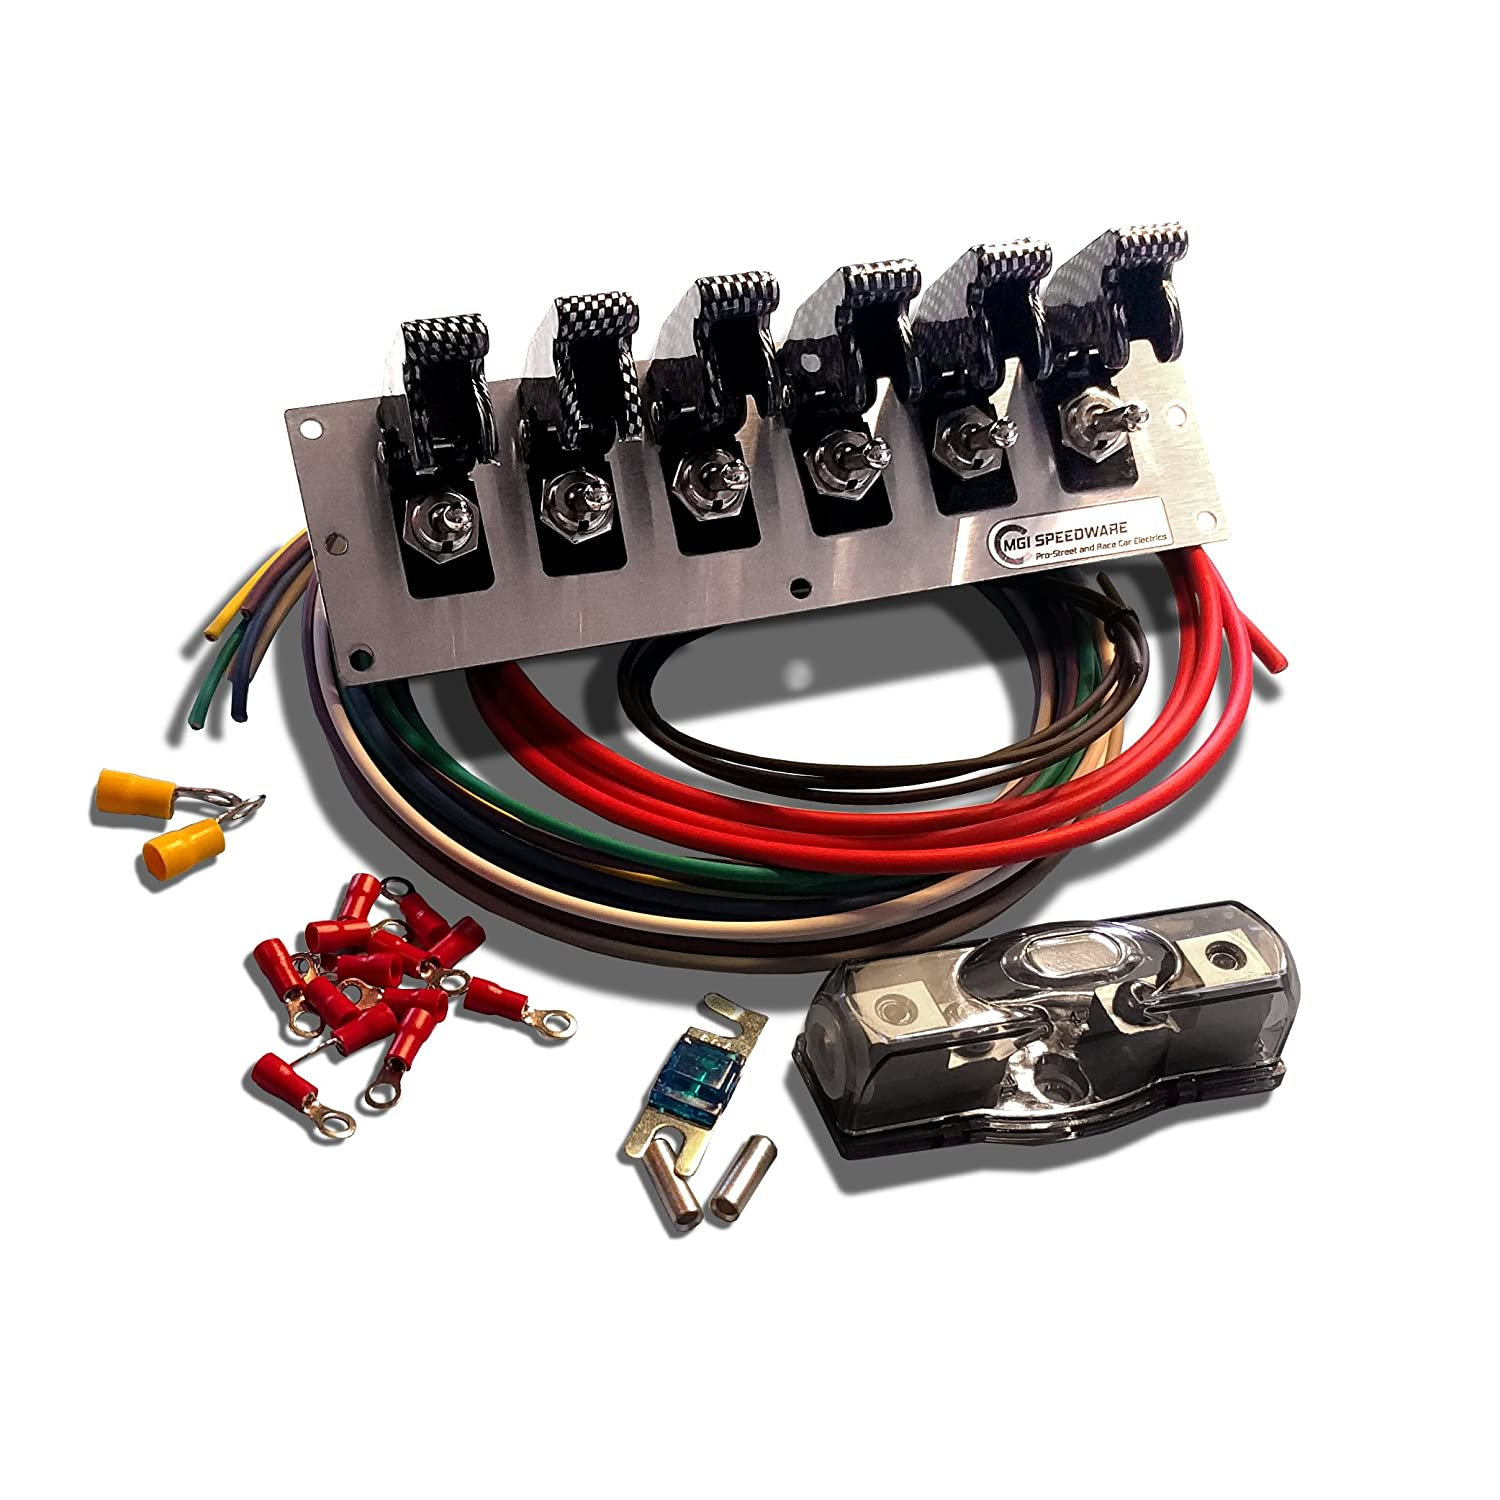 6 Gang Metal Toggle Switch Panel Wiring Kit with Red Aircraft Safety Covers — 12V Racing Car, Boat and Truck MGI